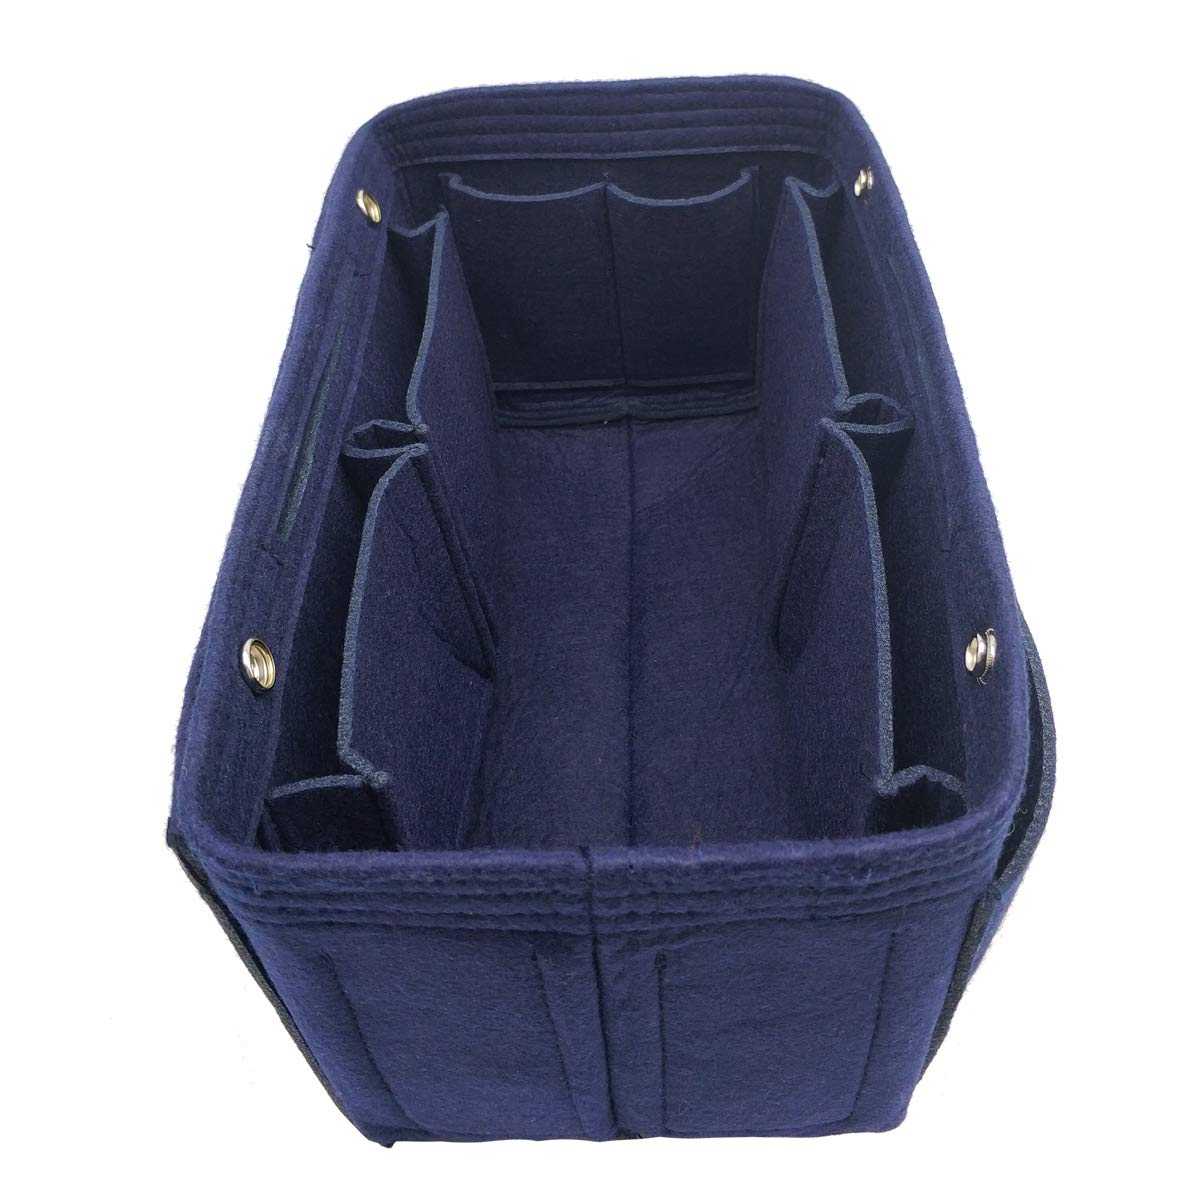 LEXSION Felt Fabric Purse Handbag Organizer Bag - MultiPocket Insert Bag Dark Blue L